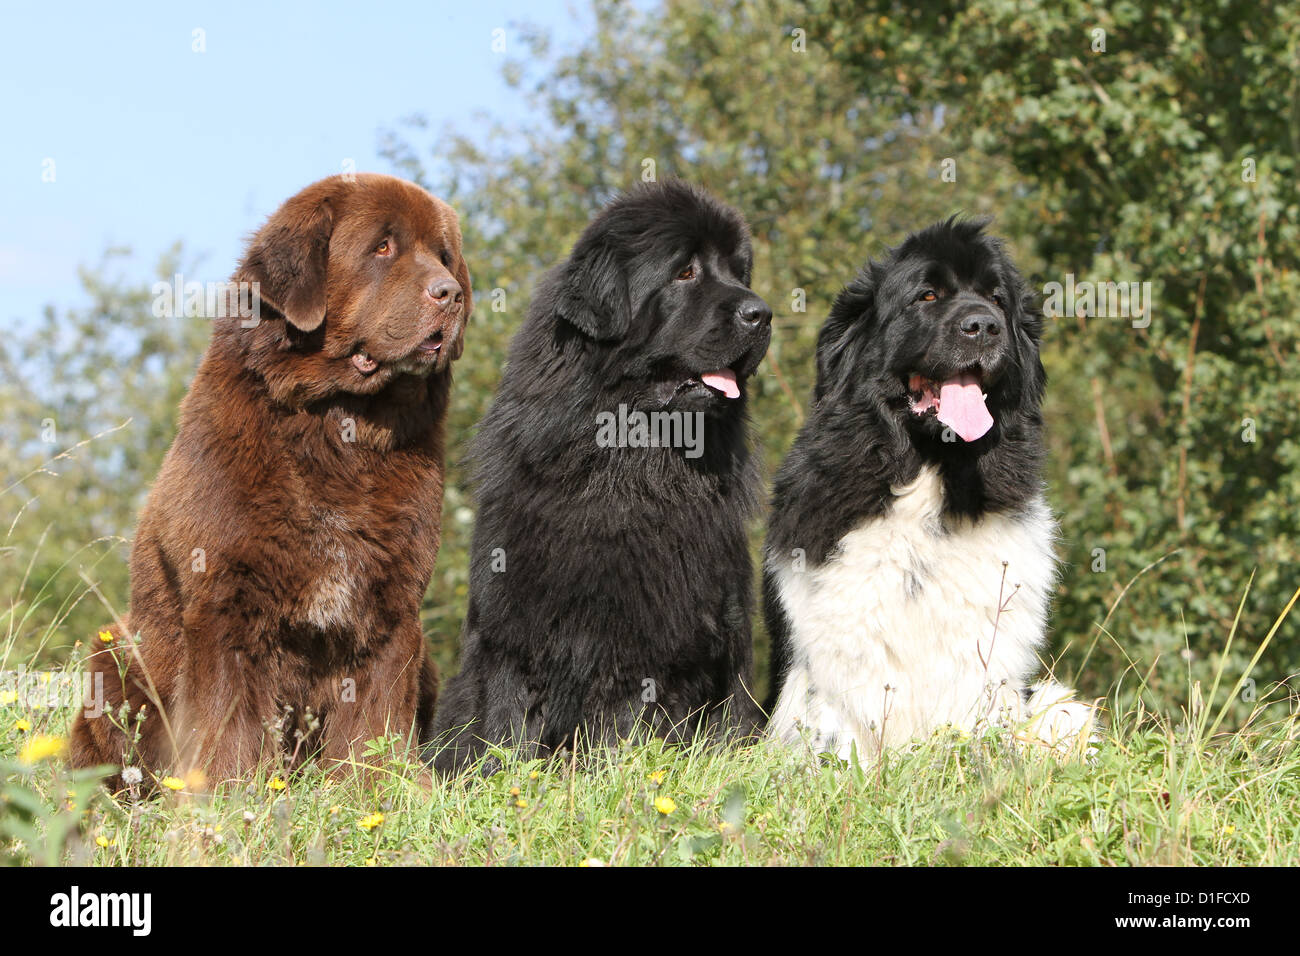 Dog Three Newfoundland Black And White Brown Black Sitting Stock